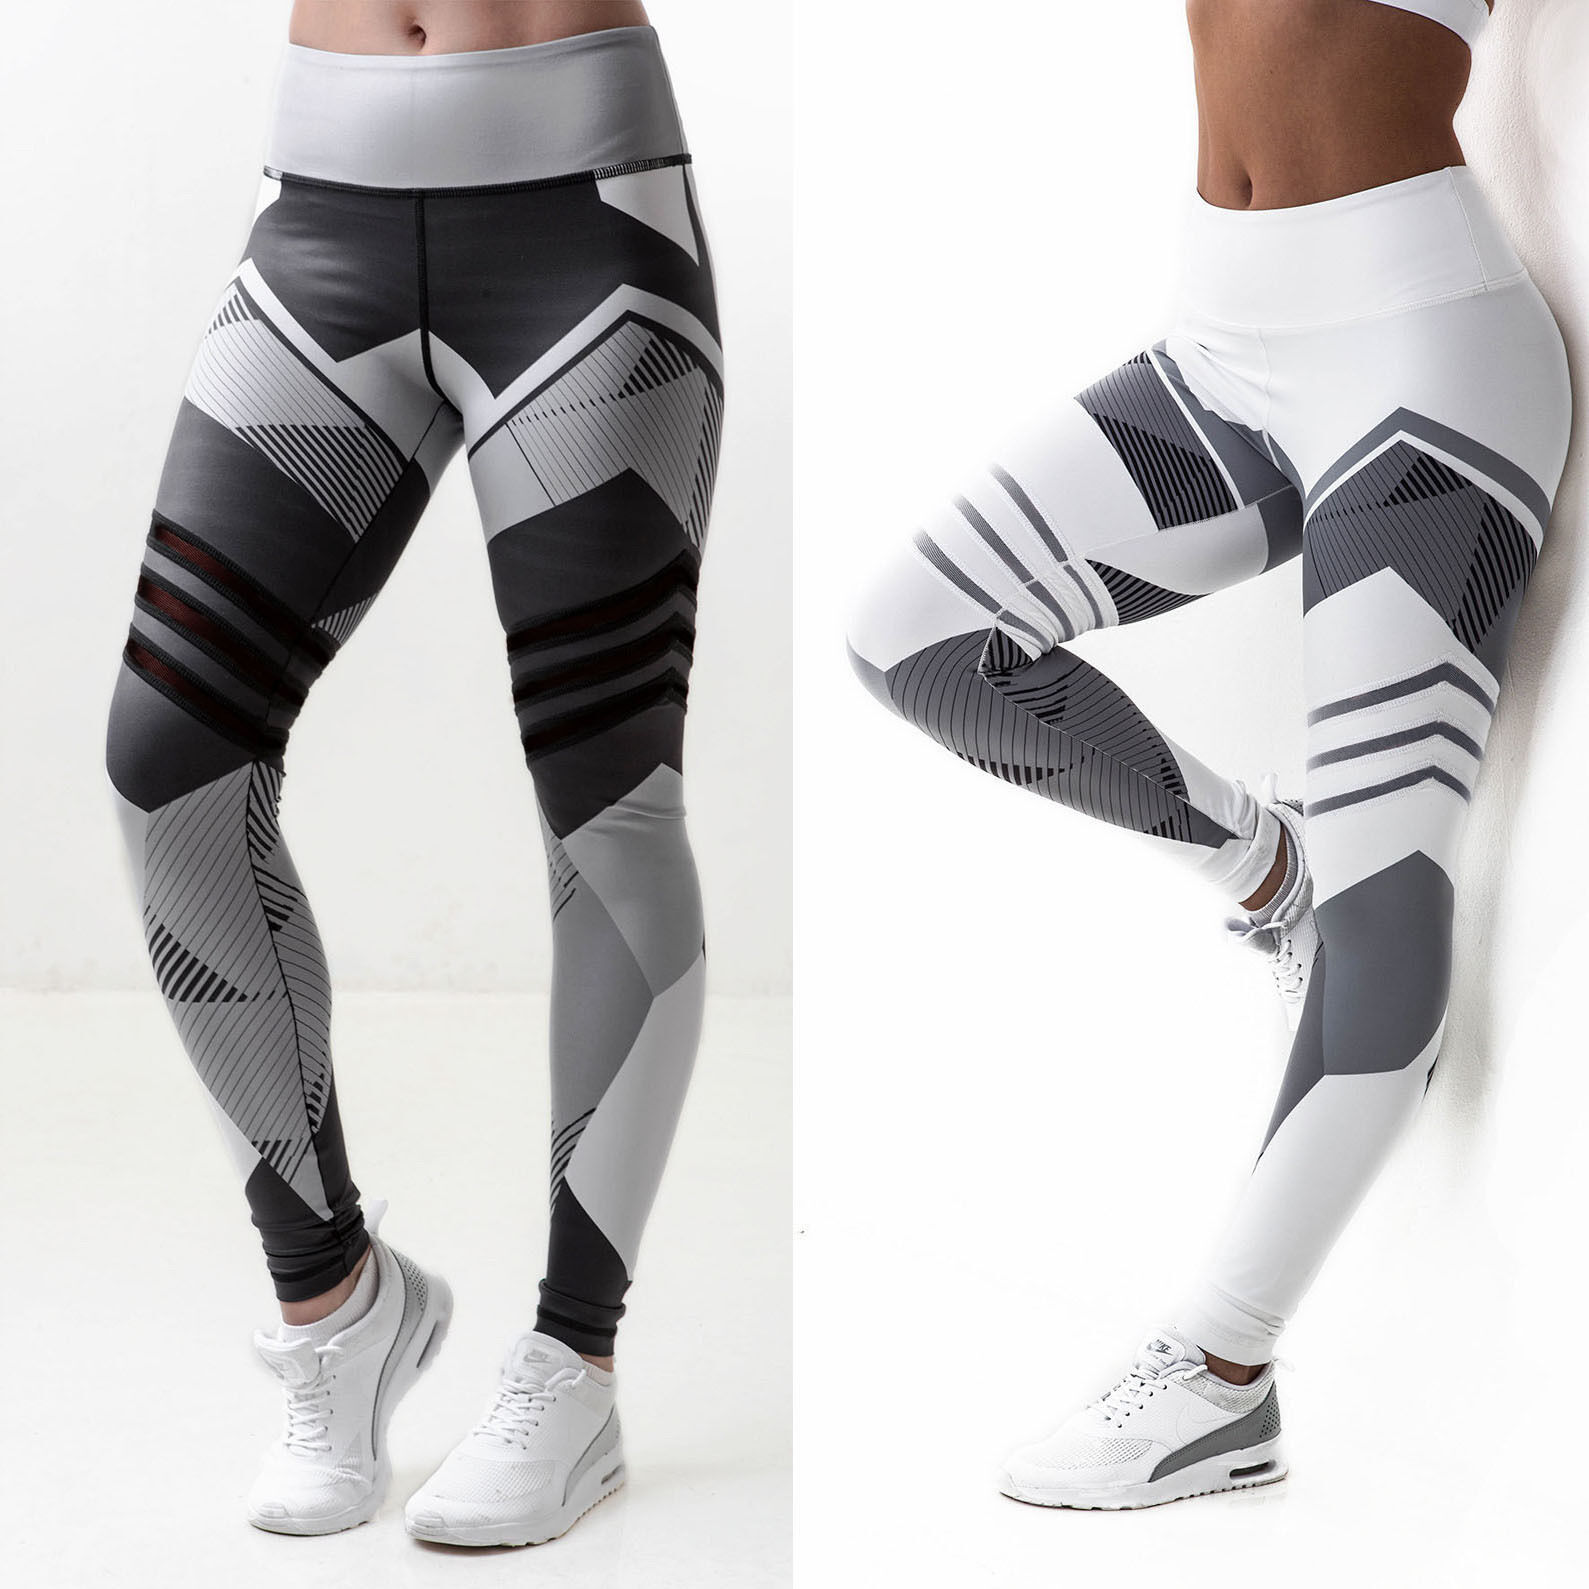 Leggings - US Womens Yoga Fitness Leggings Running Stretch Sports High Waist Pants Trousers